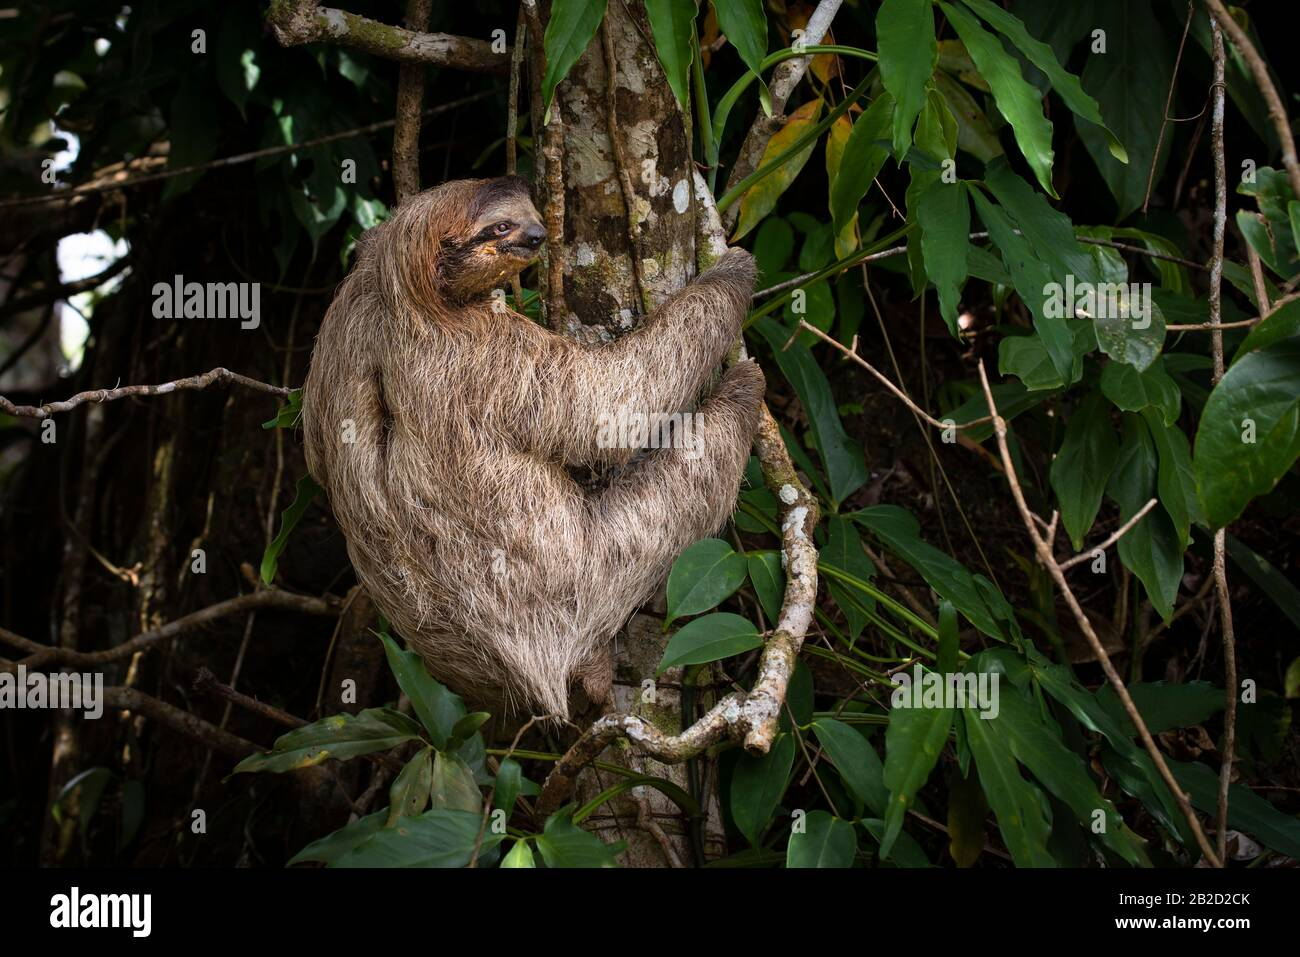 Brown-throated three-toed sloth young one climbing a tree Stock Photo